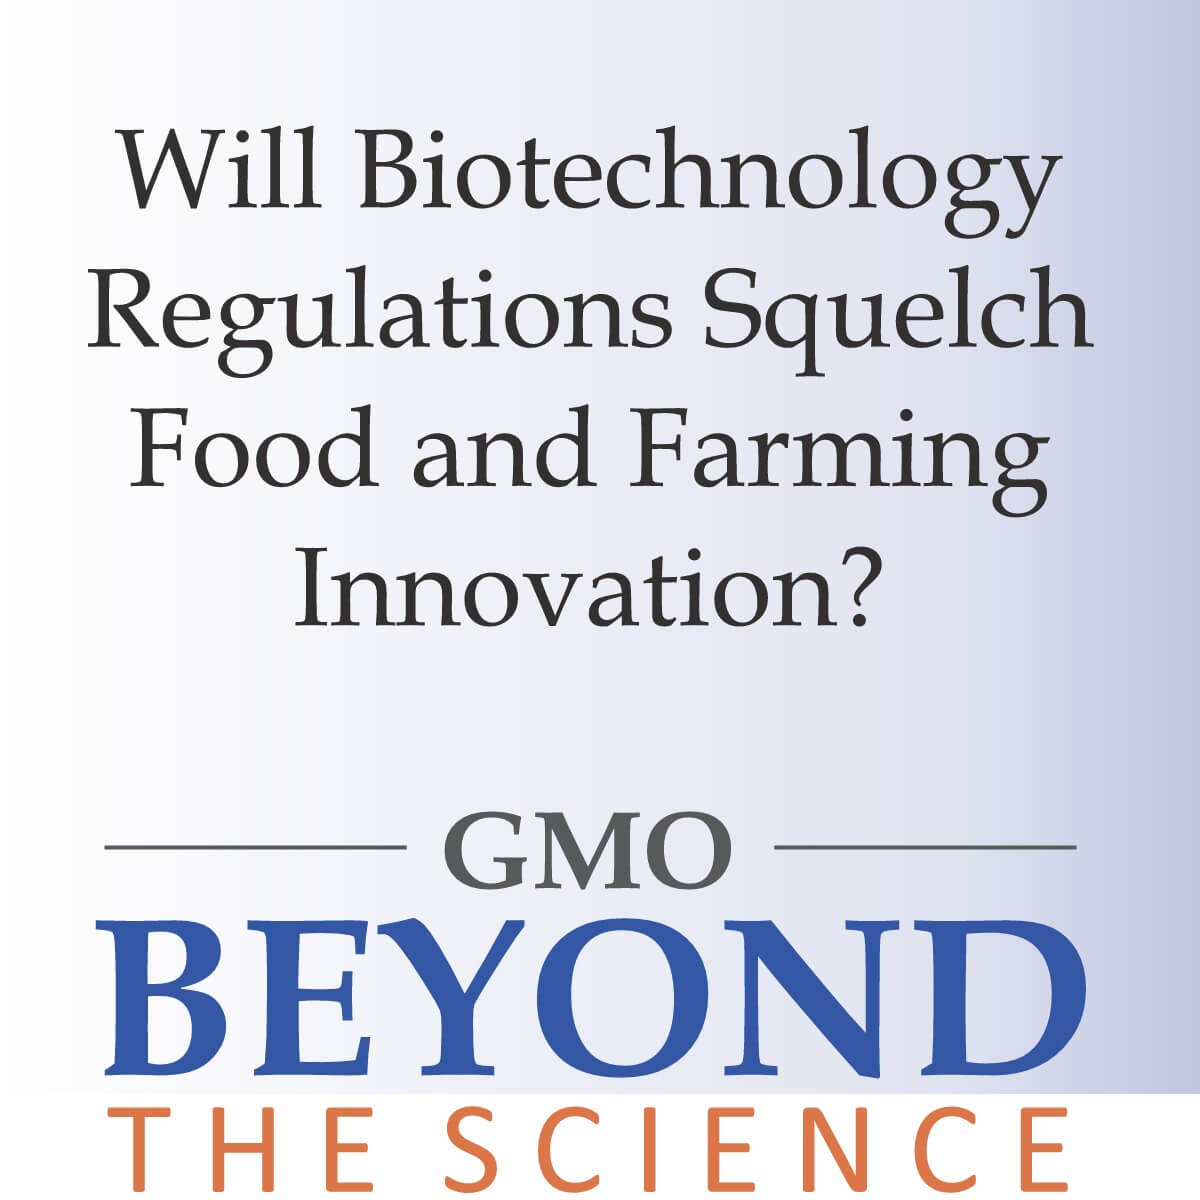 Will Biotechnology Regulations Squelch Food and Farming Innovation?